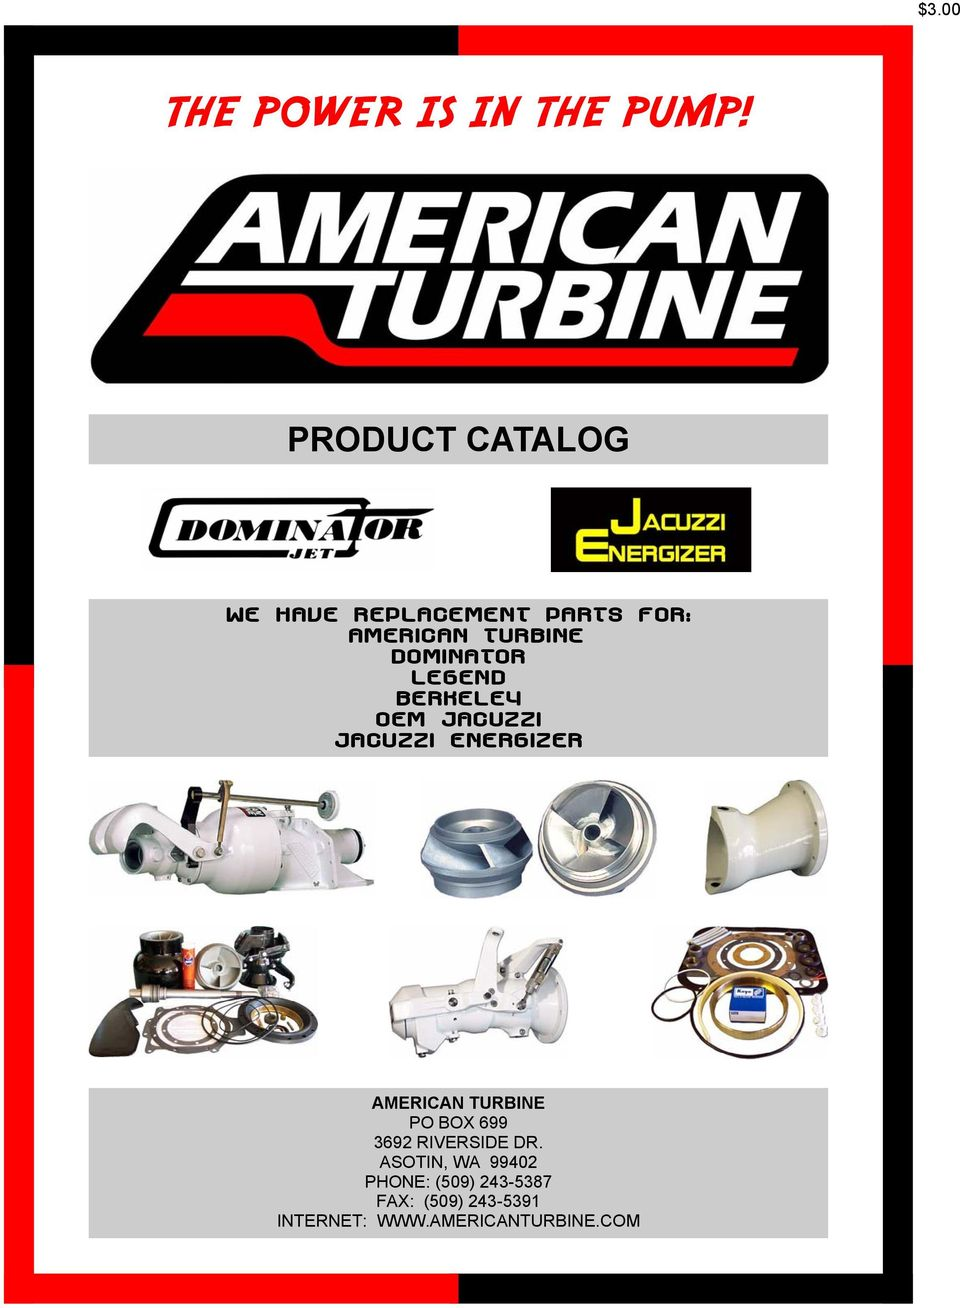 The Power Is In Pump Pdf Standard Whirlpool Tub Together With Fuel Wiring Diagram Dominator Legend Berkeley Oem Jacuzzi Energizer American Turbine